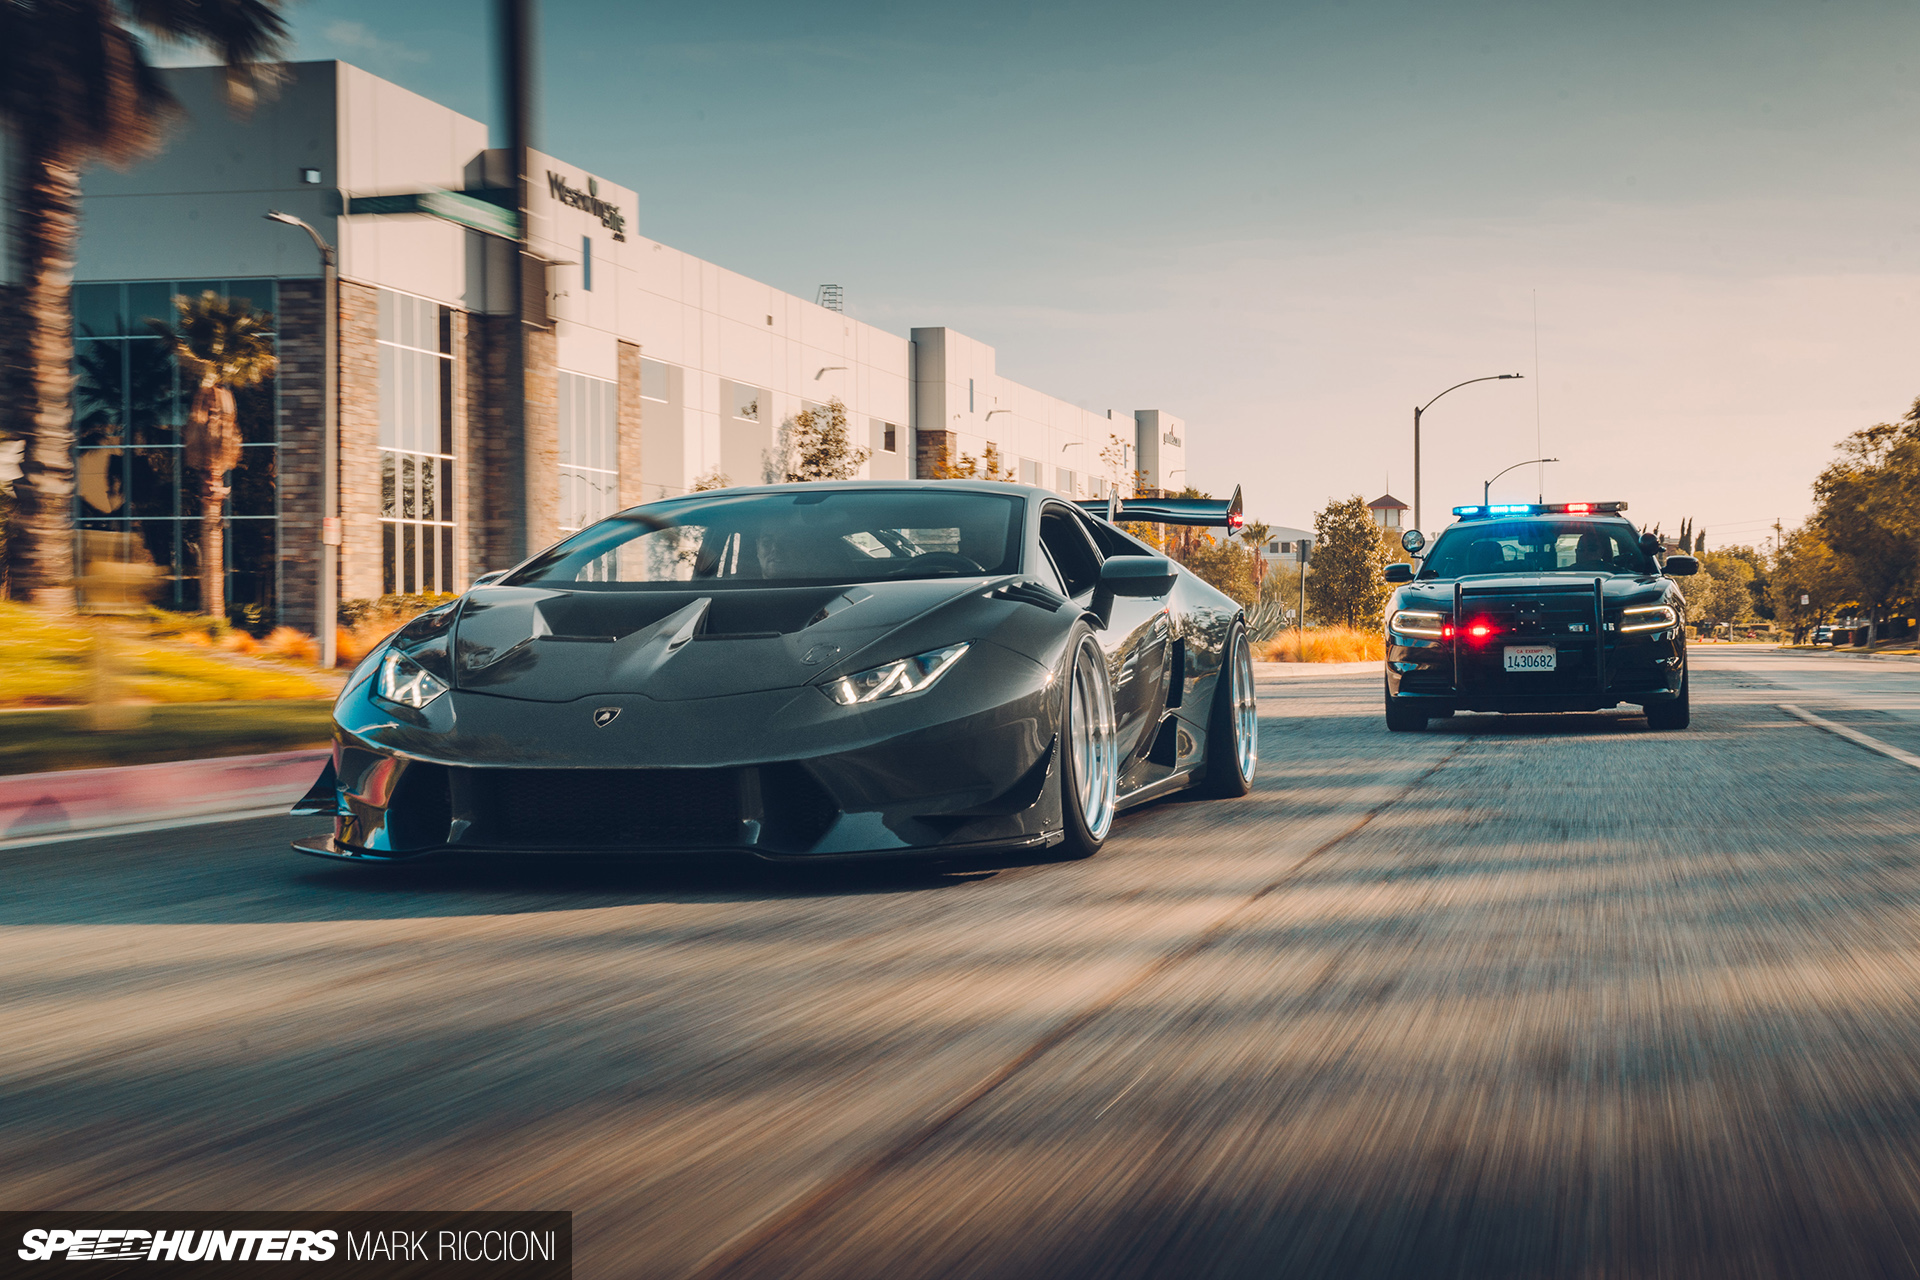 Chasing Extreme Dreams In A Twin Turbo Huracan Speedhunters